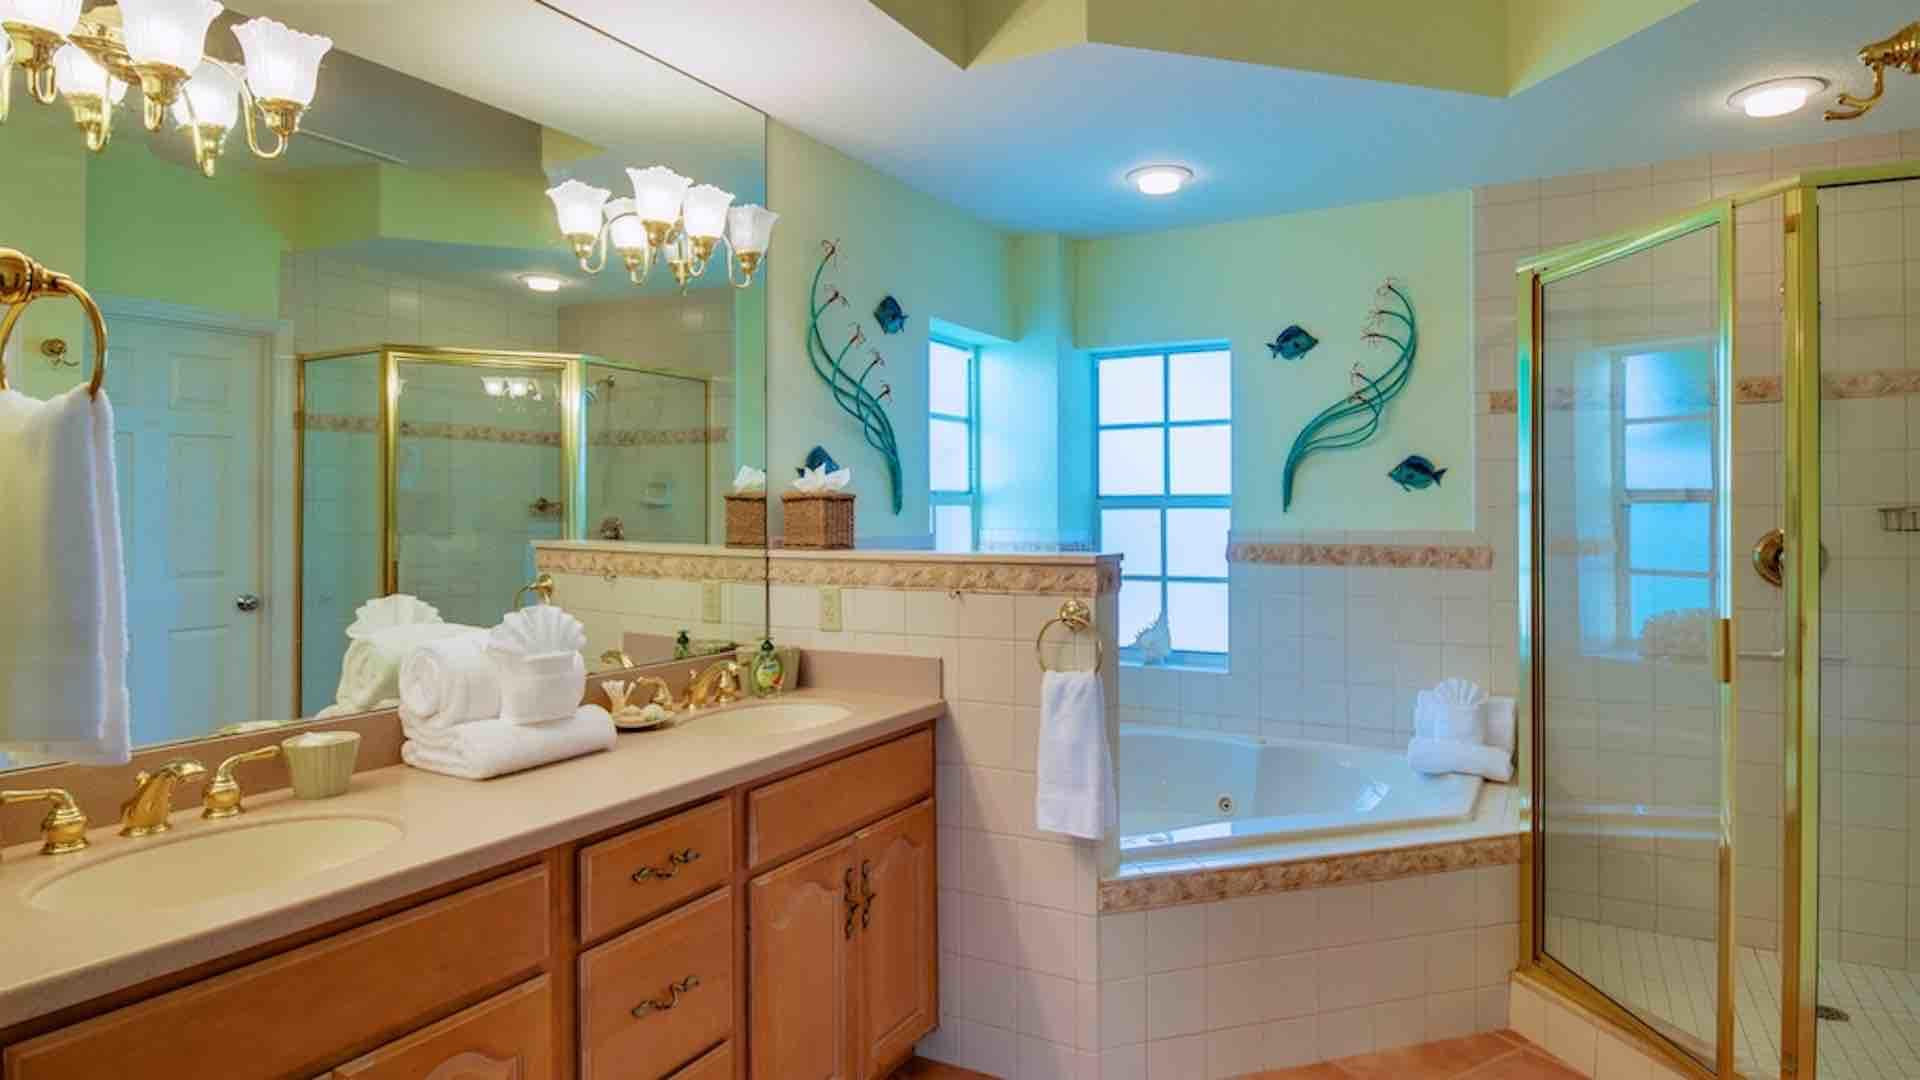 The master bathroom has double sinks and a Jacuzzi tub...